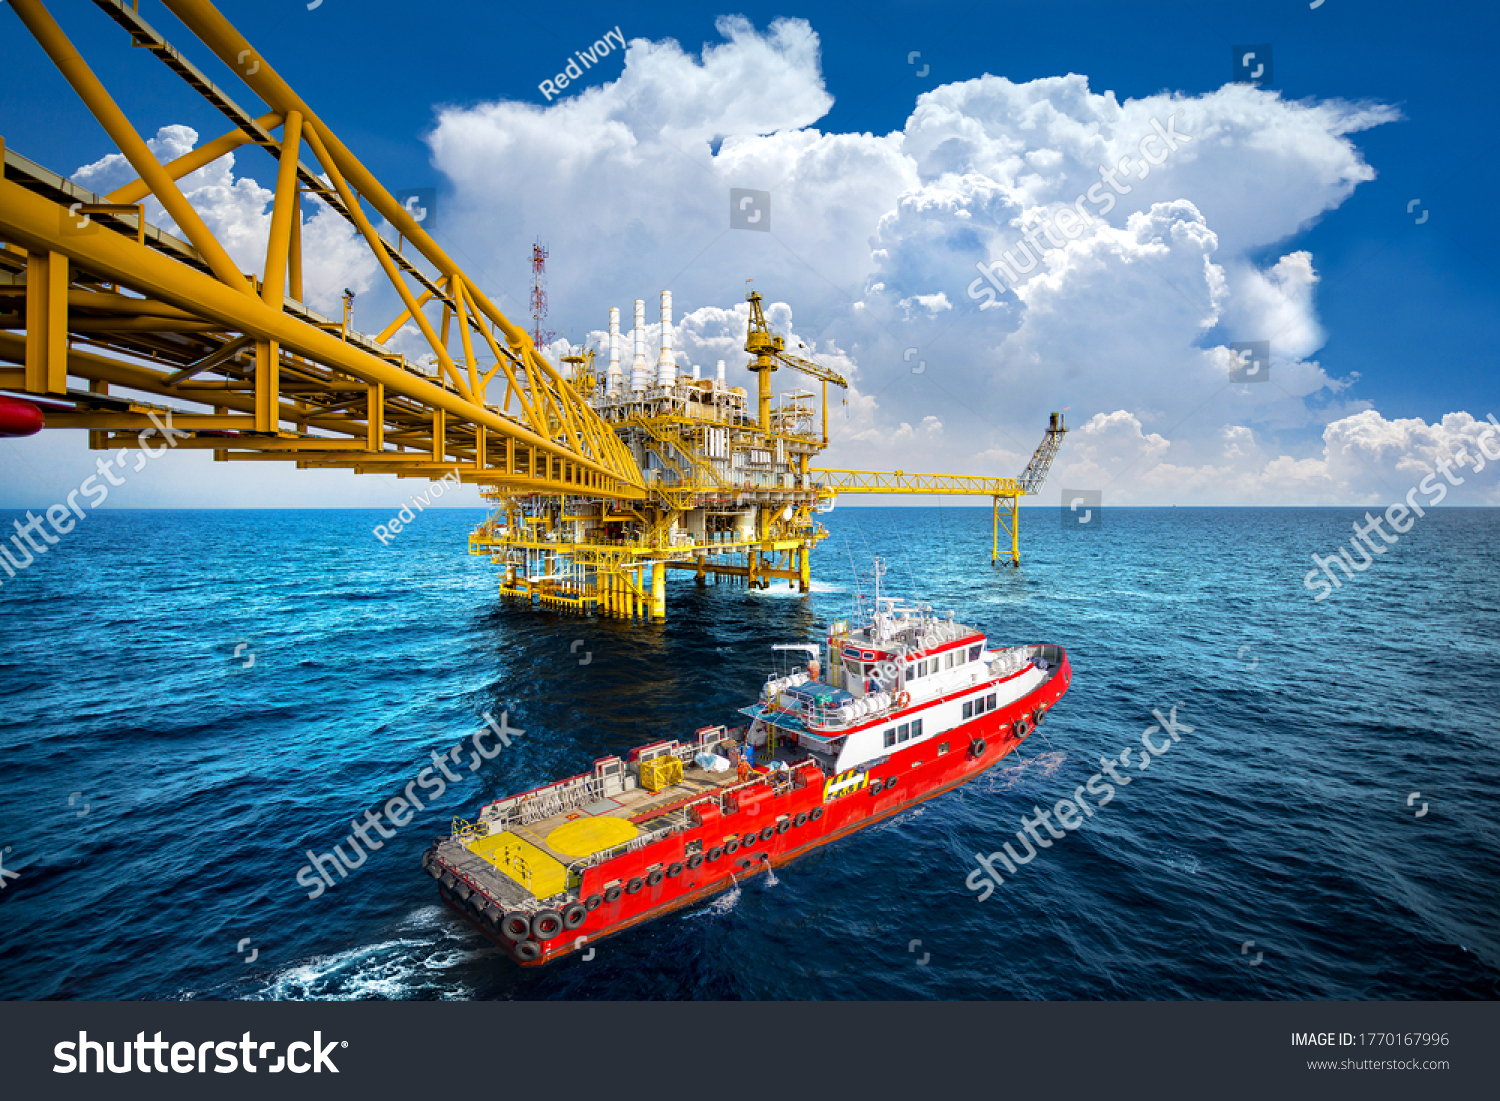 Supply vessel and Jack up rig in the gulf #1770167996